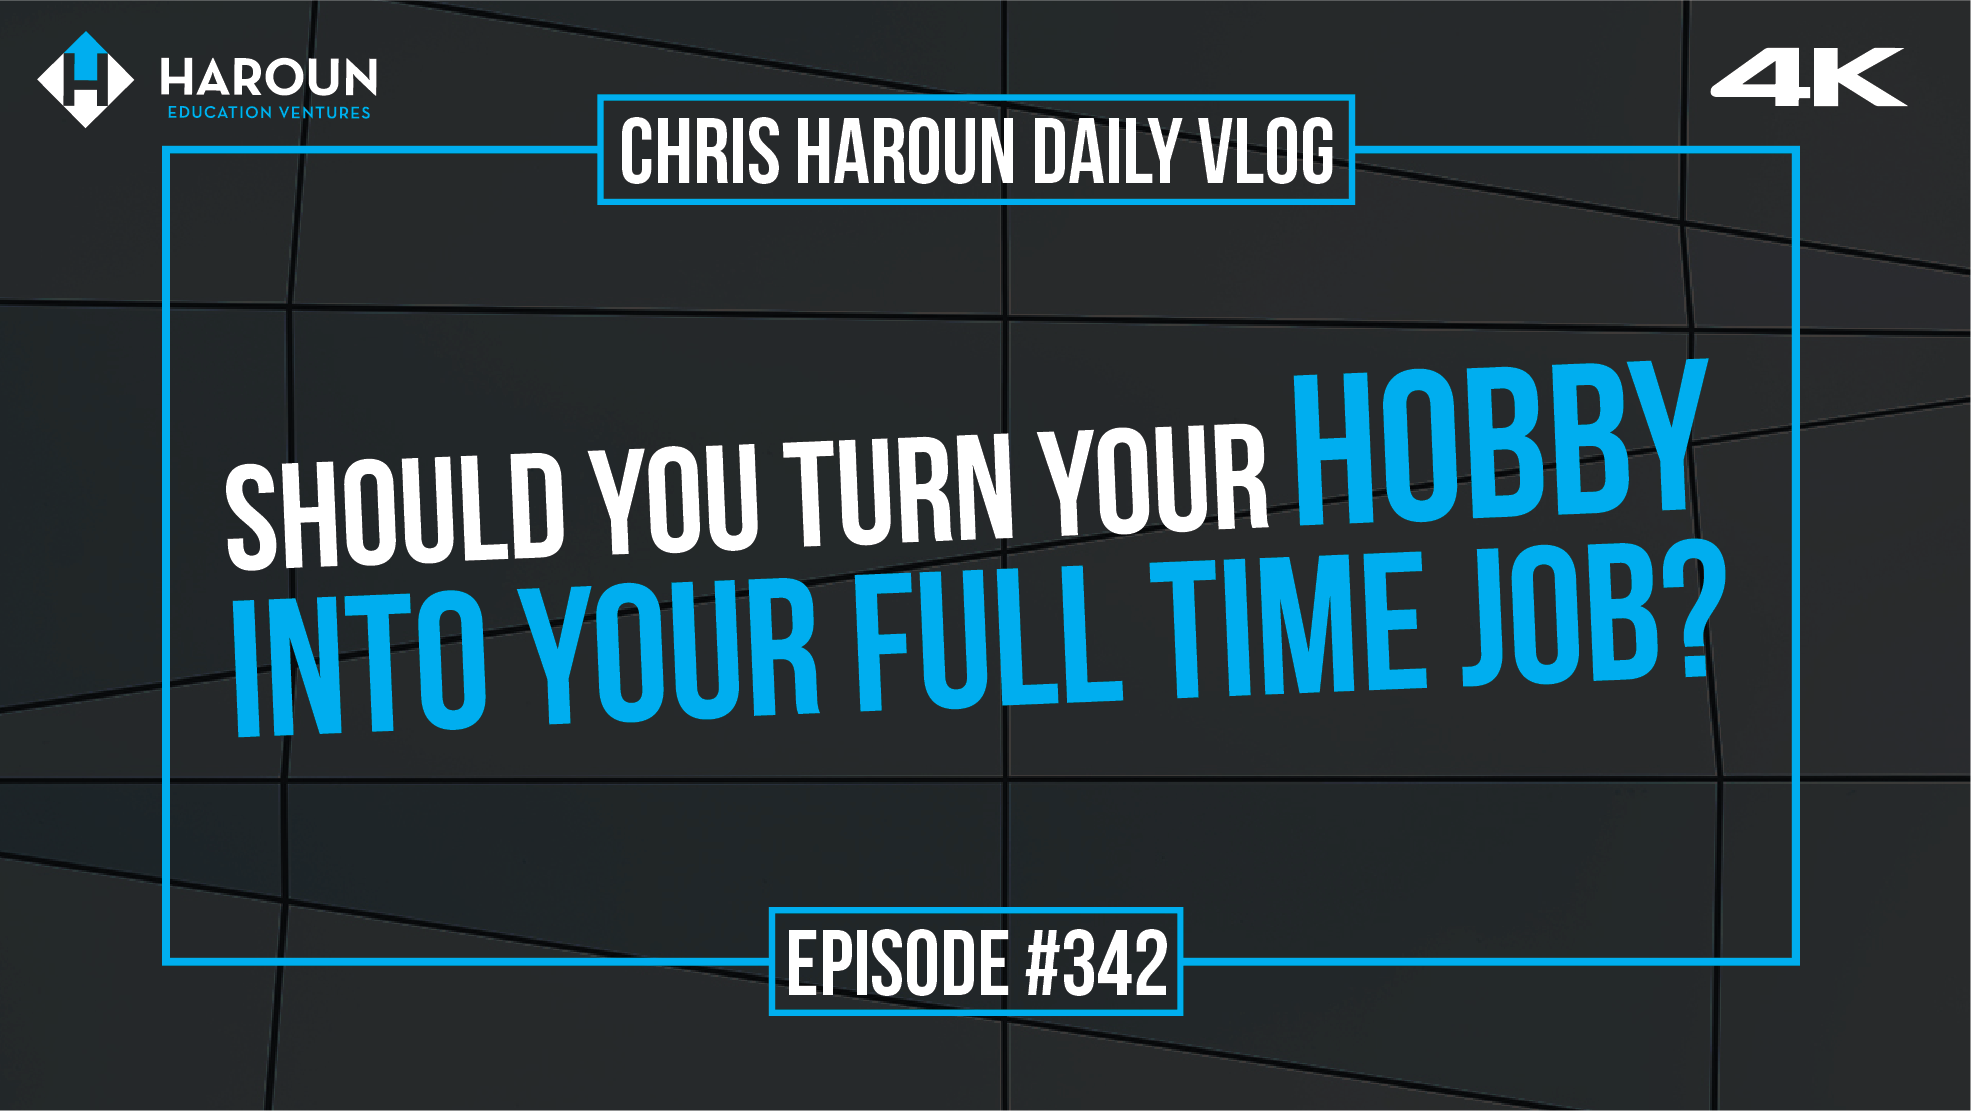 VLOG_342_7_8_2019_Should You Turn Your Hobby Into Your Full Time Job?.png